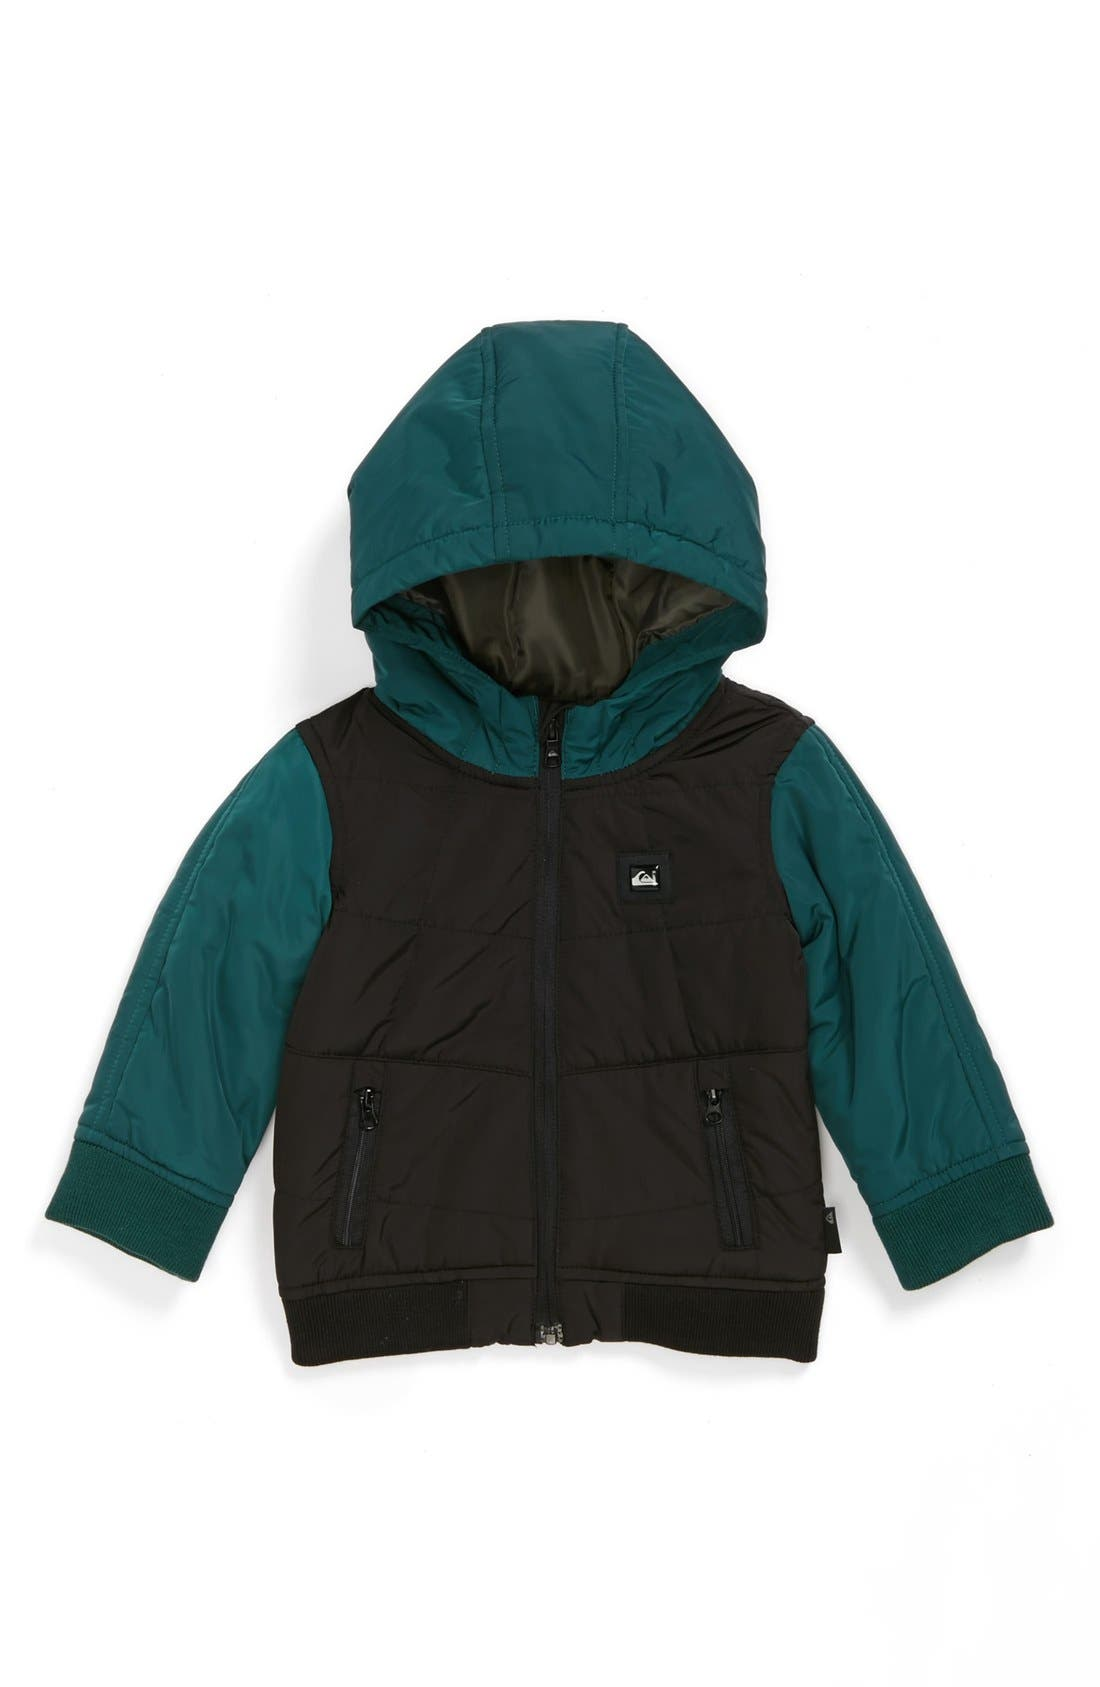 Main Image - Quiksilver 'Marquette' Water Resistant Quilted Jacket (Toddler Boys)